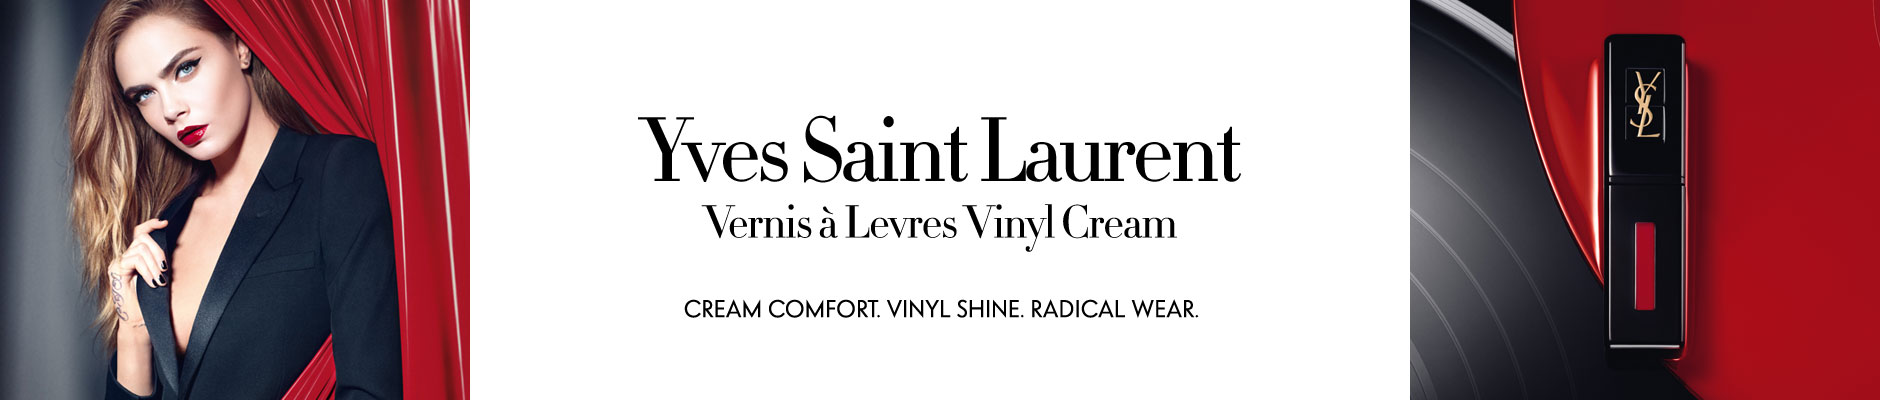 Yves Saint Laurent: Vernis a Levres Vinyl Cream - Cream Comfort. Vinyl Shine. Radical Wear.